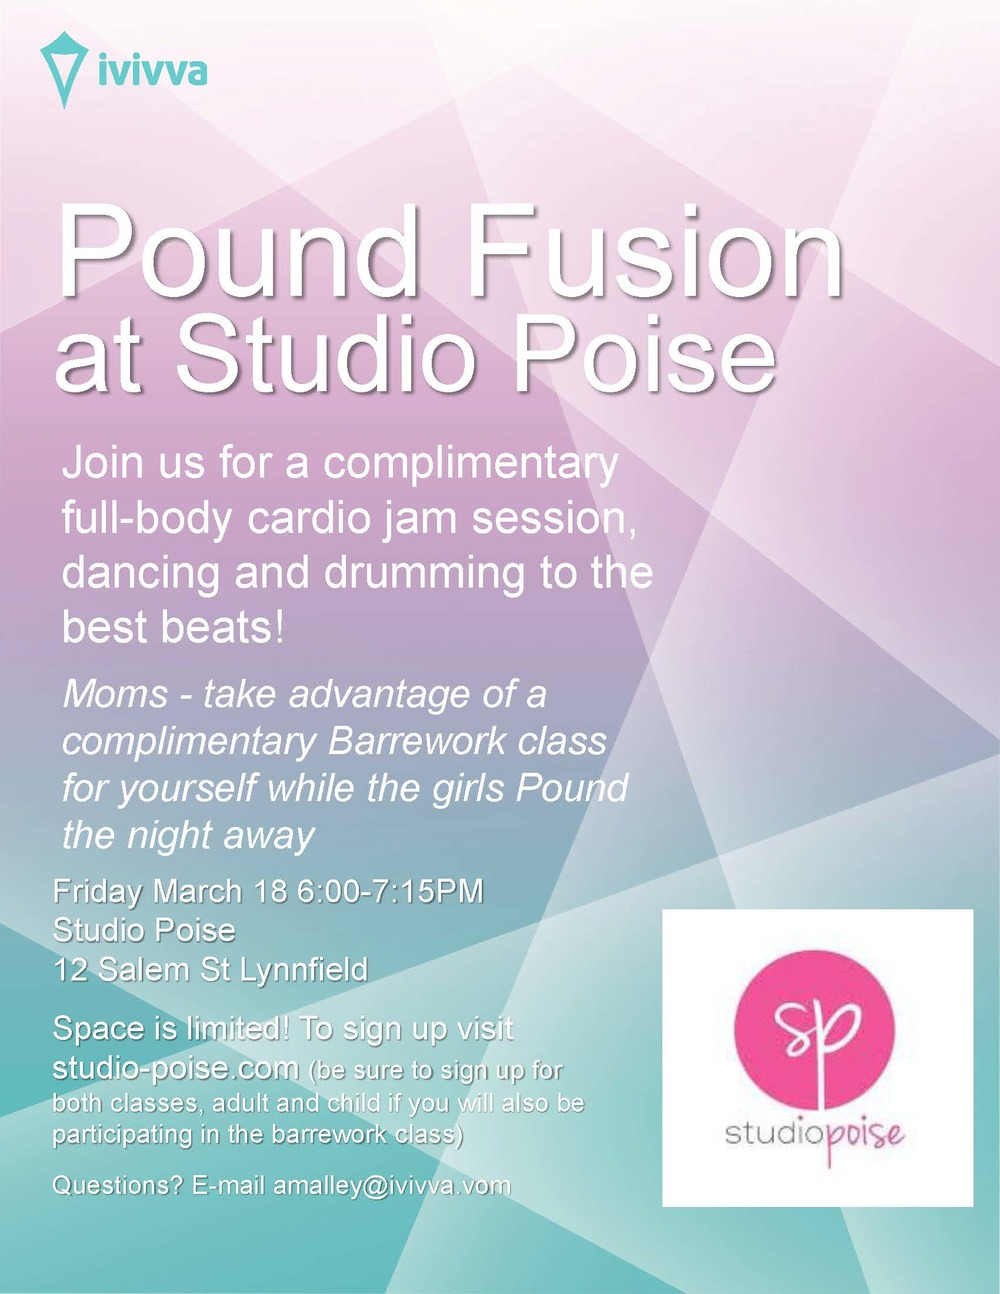 Pound Fusion at Studio Poise PDF.jpg